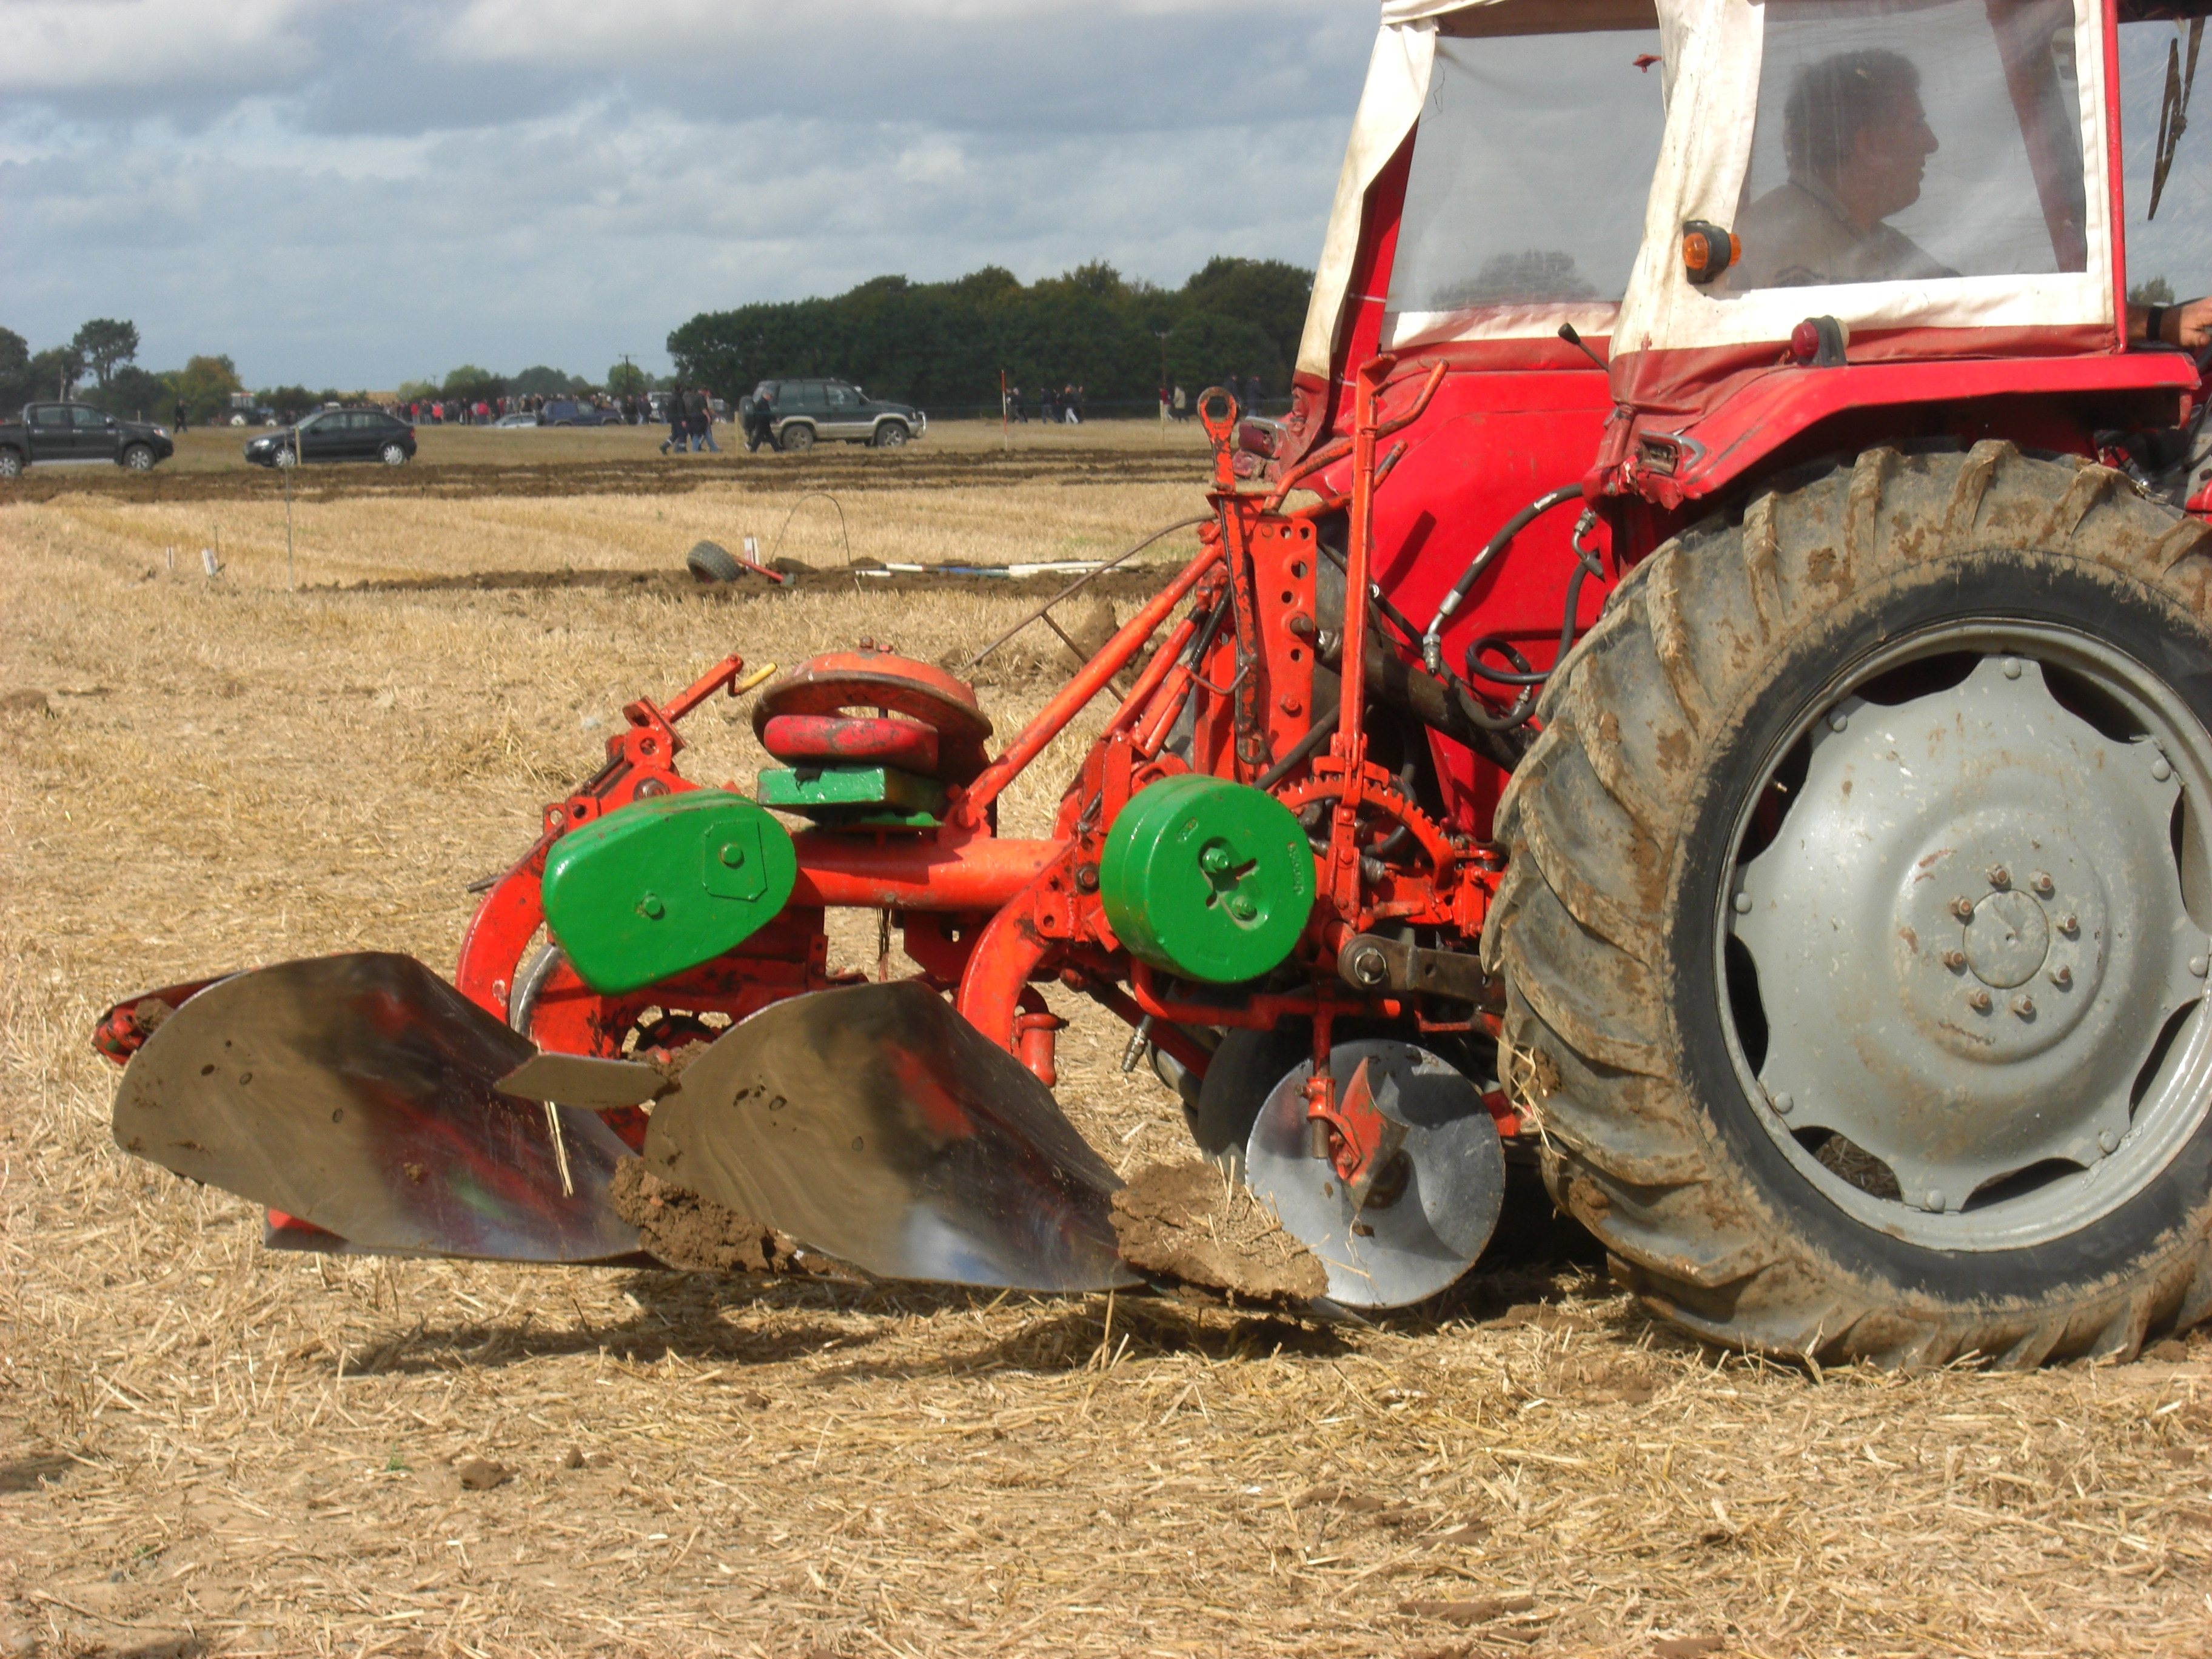 To plough a furrow definition and meaning | Collins ...